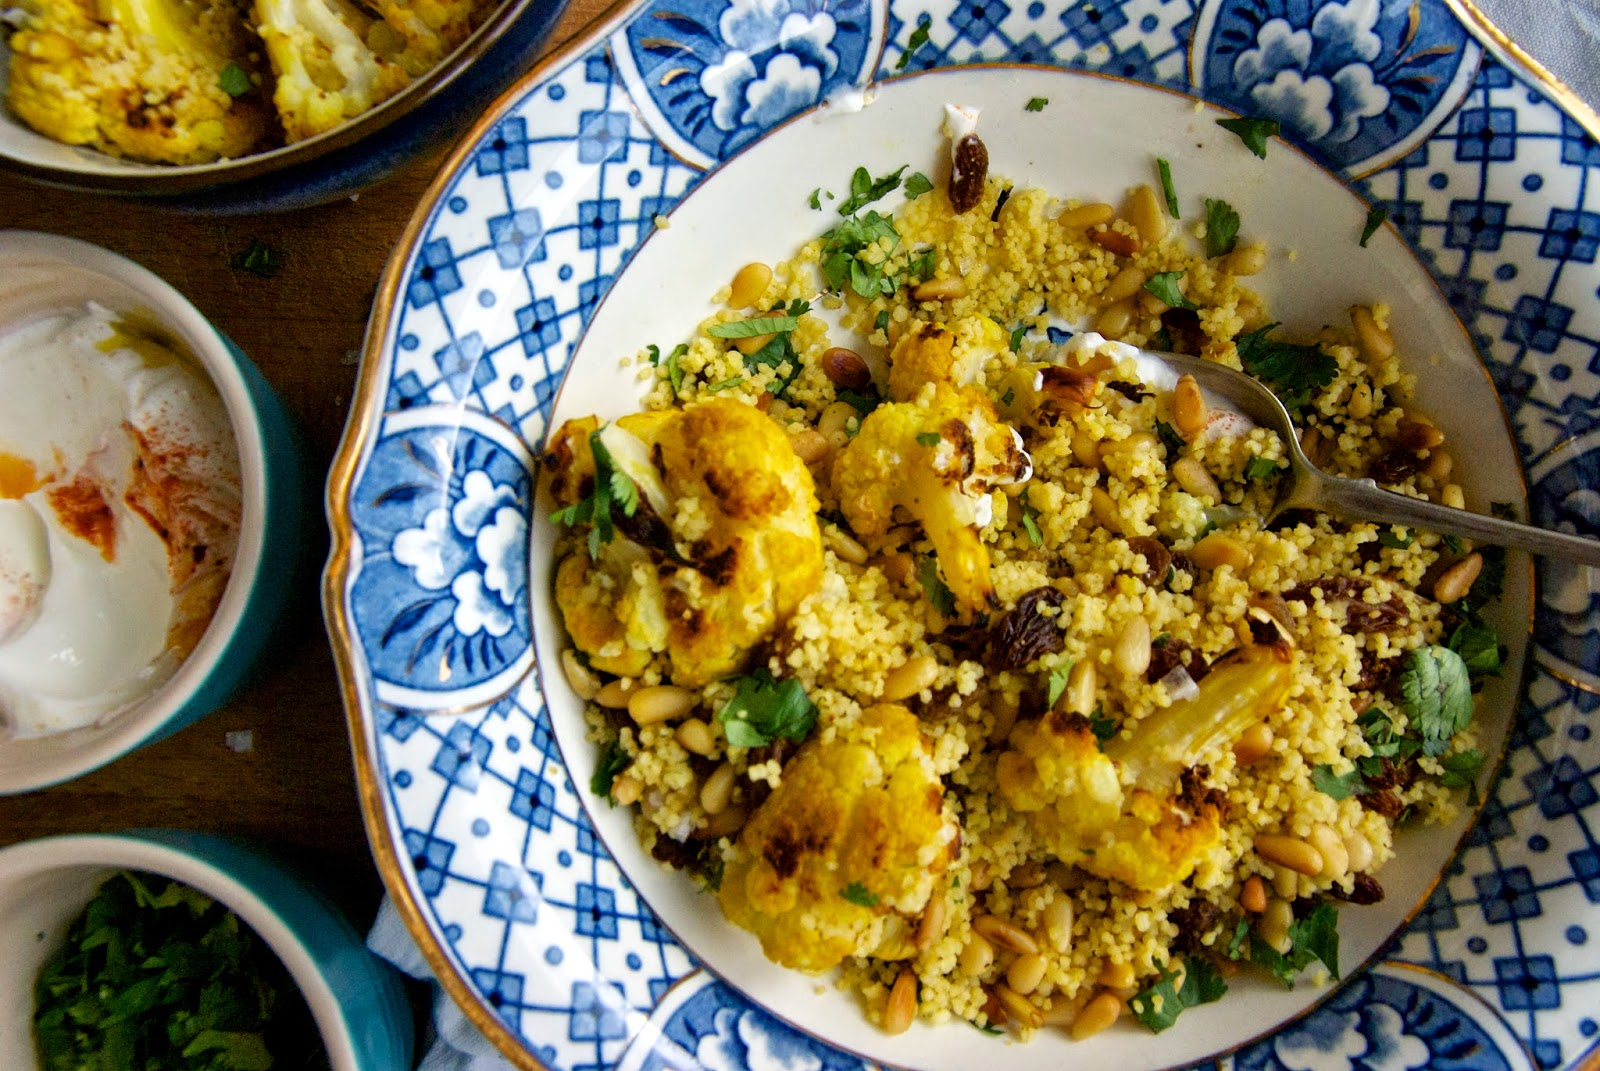 Roasted cauliflower and cous cous salad with yoghurt